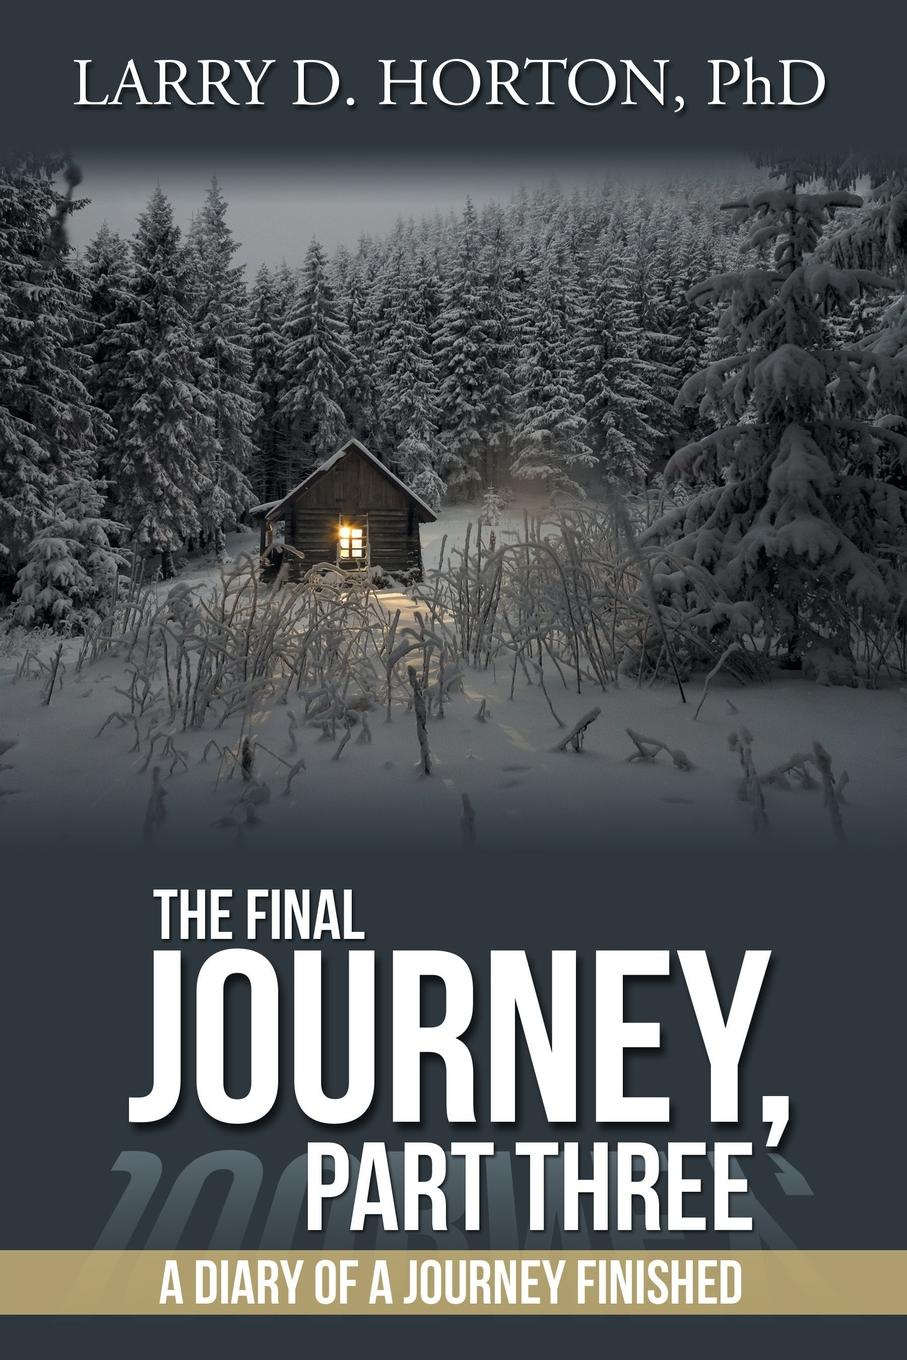 PhD Larry D. Horton The Final Journey, Part Three. A Diary of a Journey Finished journey to the end of the world